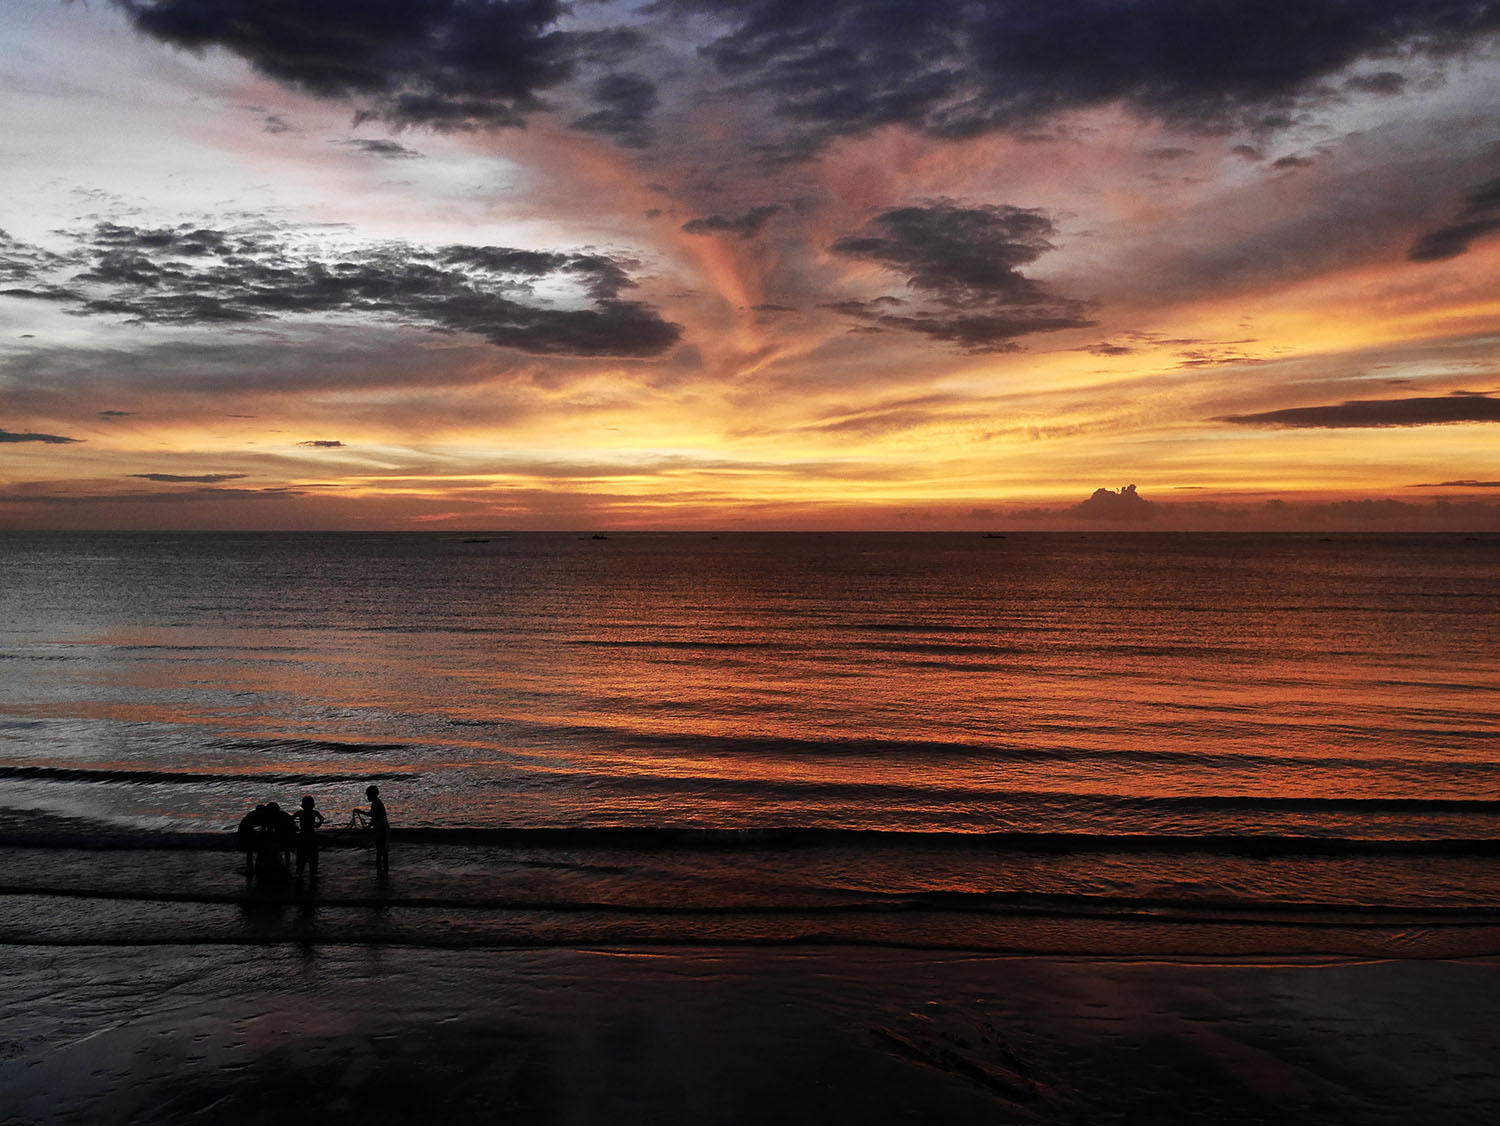 SIT STILL. The sunset in Dipolog, a city in Zamboanga del Norte, something to look forward to.